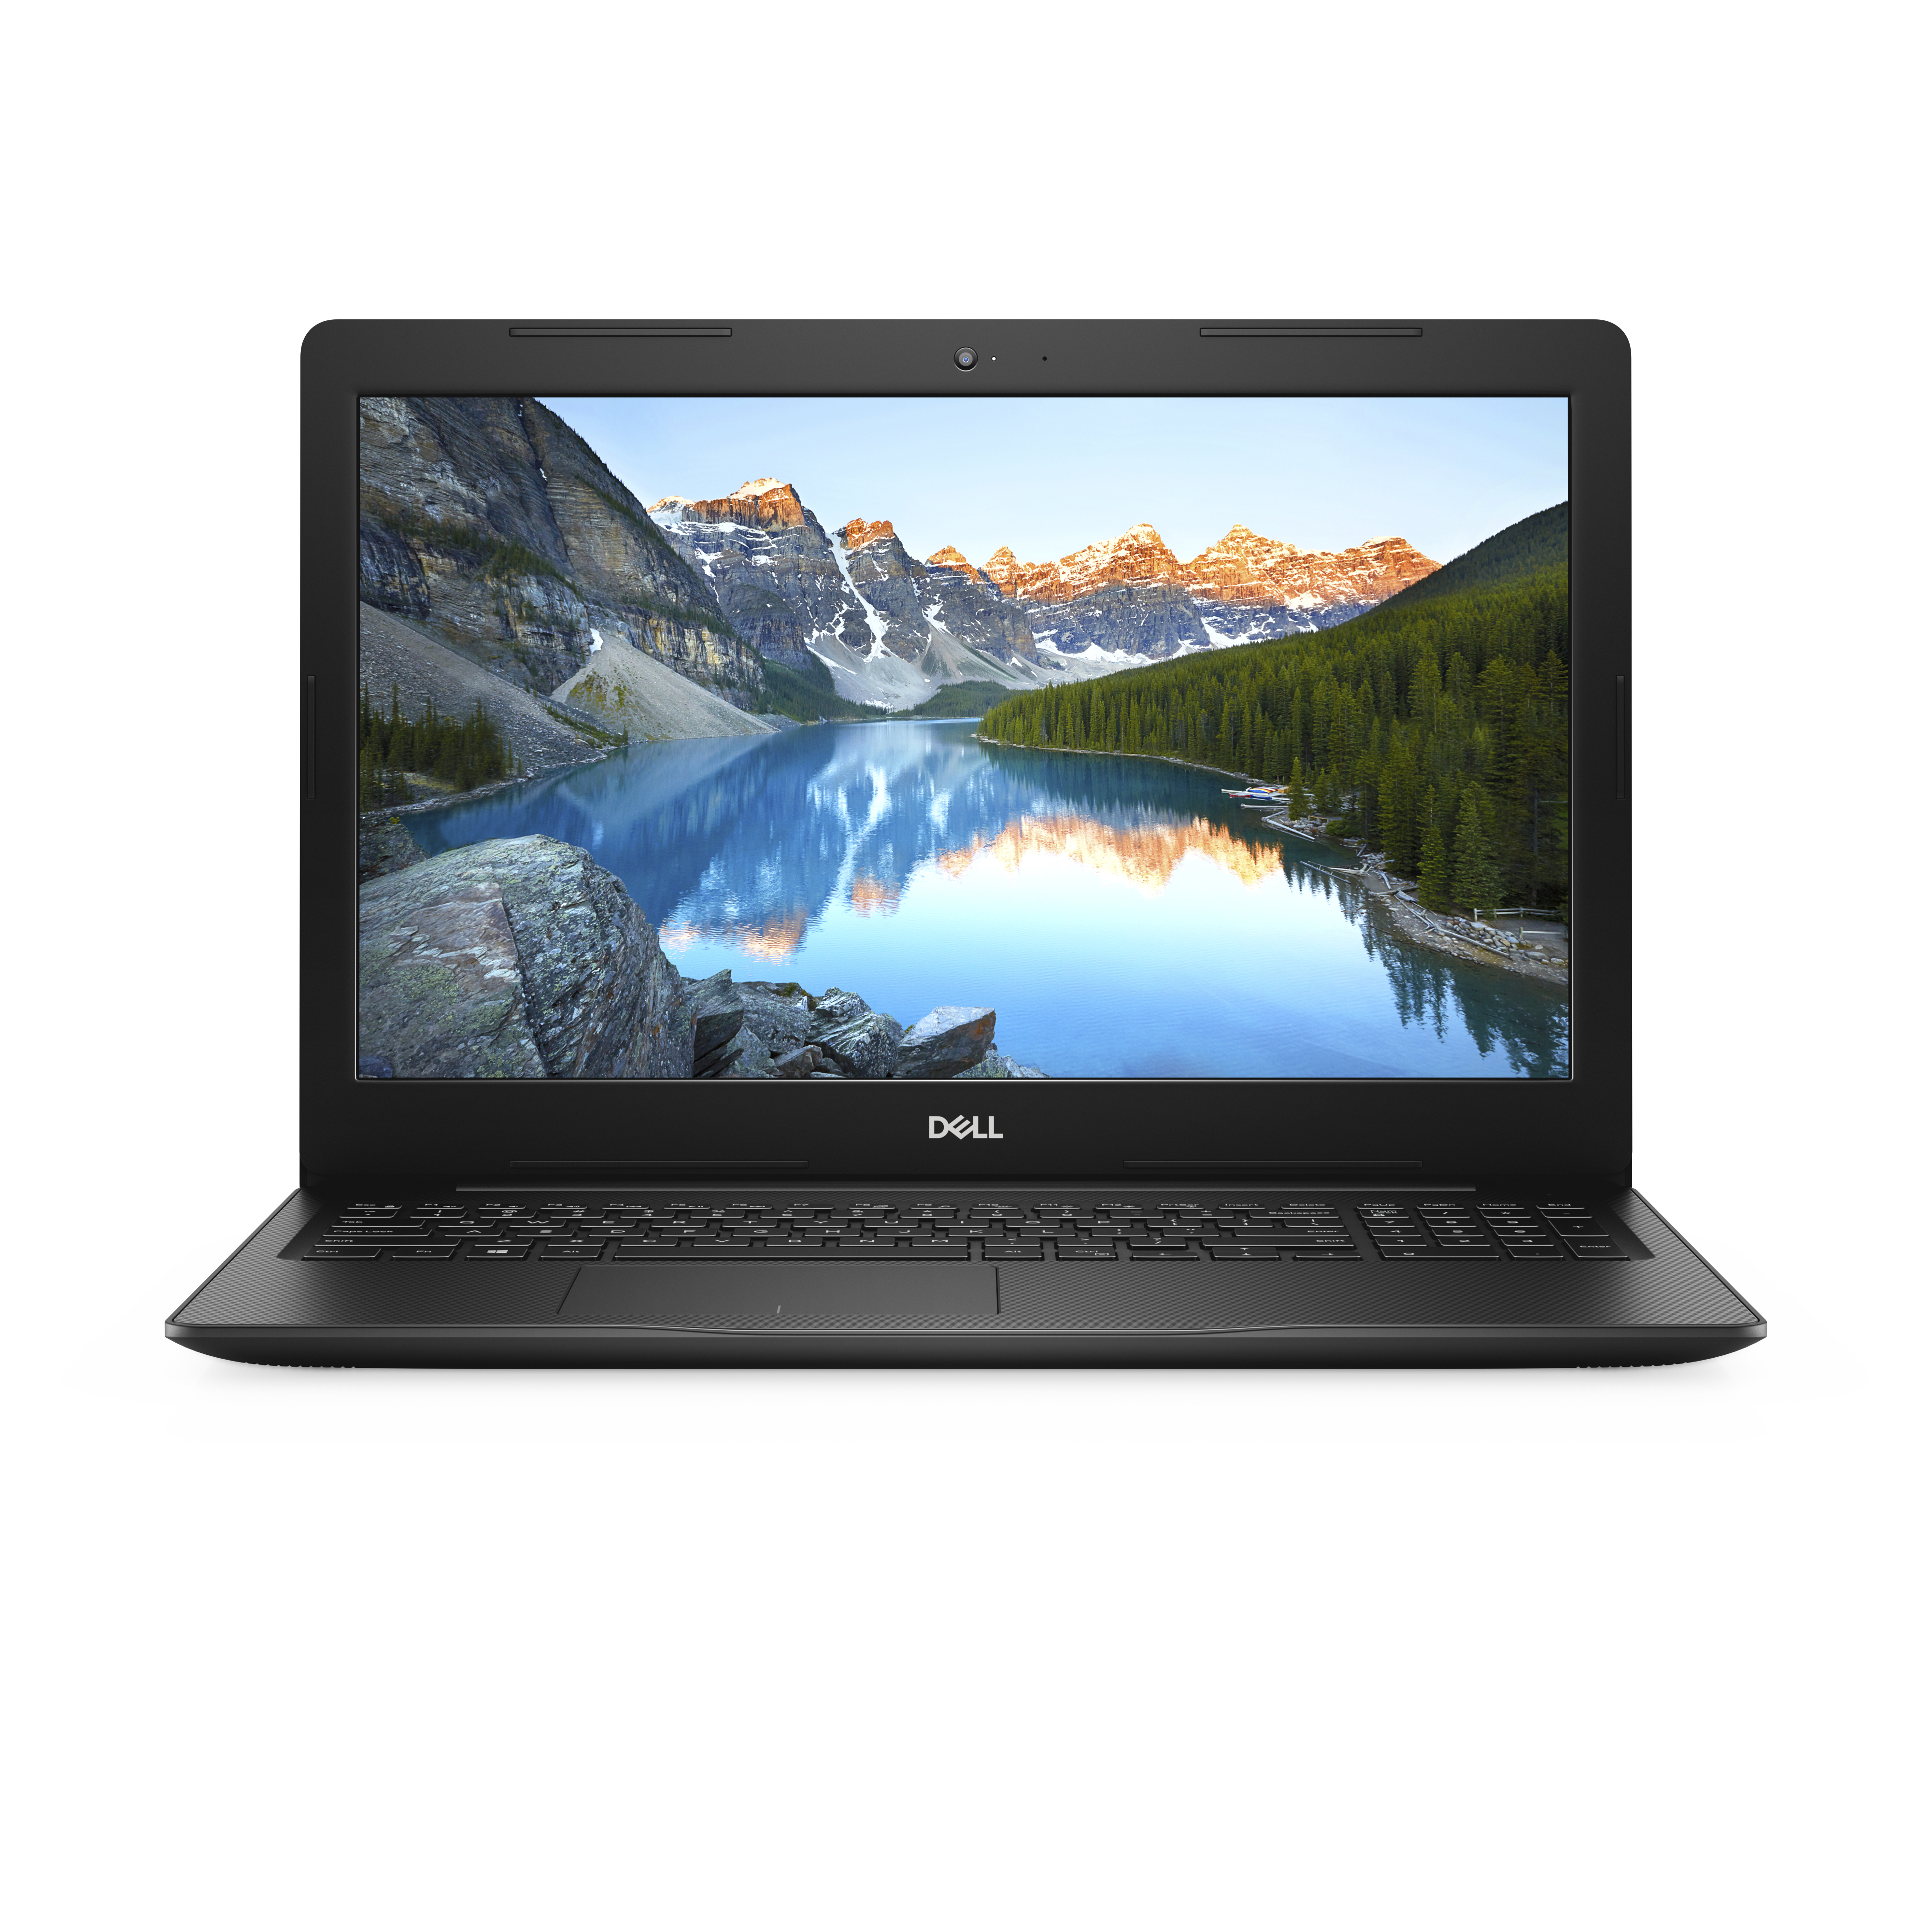 Laptop Dell Inspiron 3580 70194511 i5-8265U DDR4 4G 1TB VGA2GB 15.6 Win 10 (Silver)